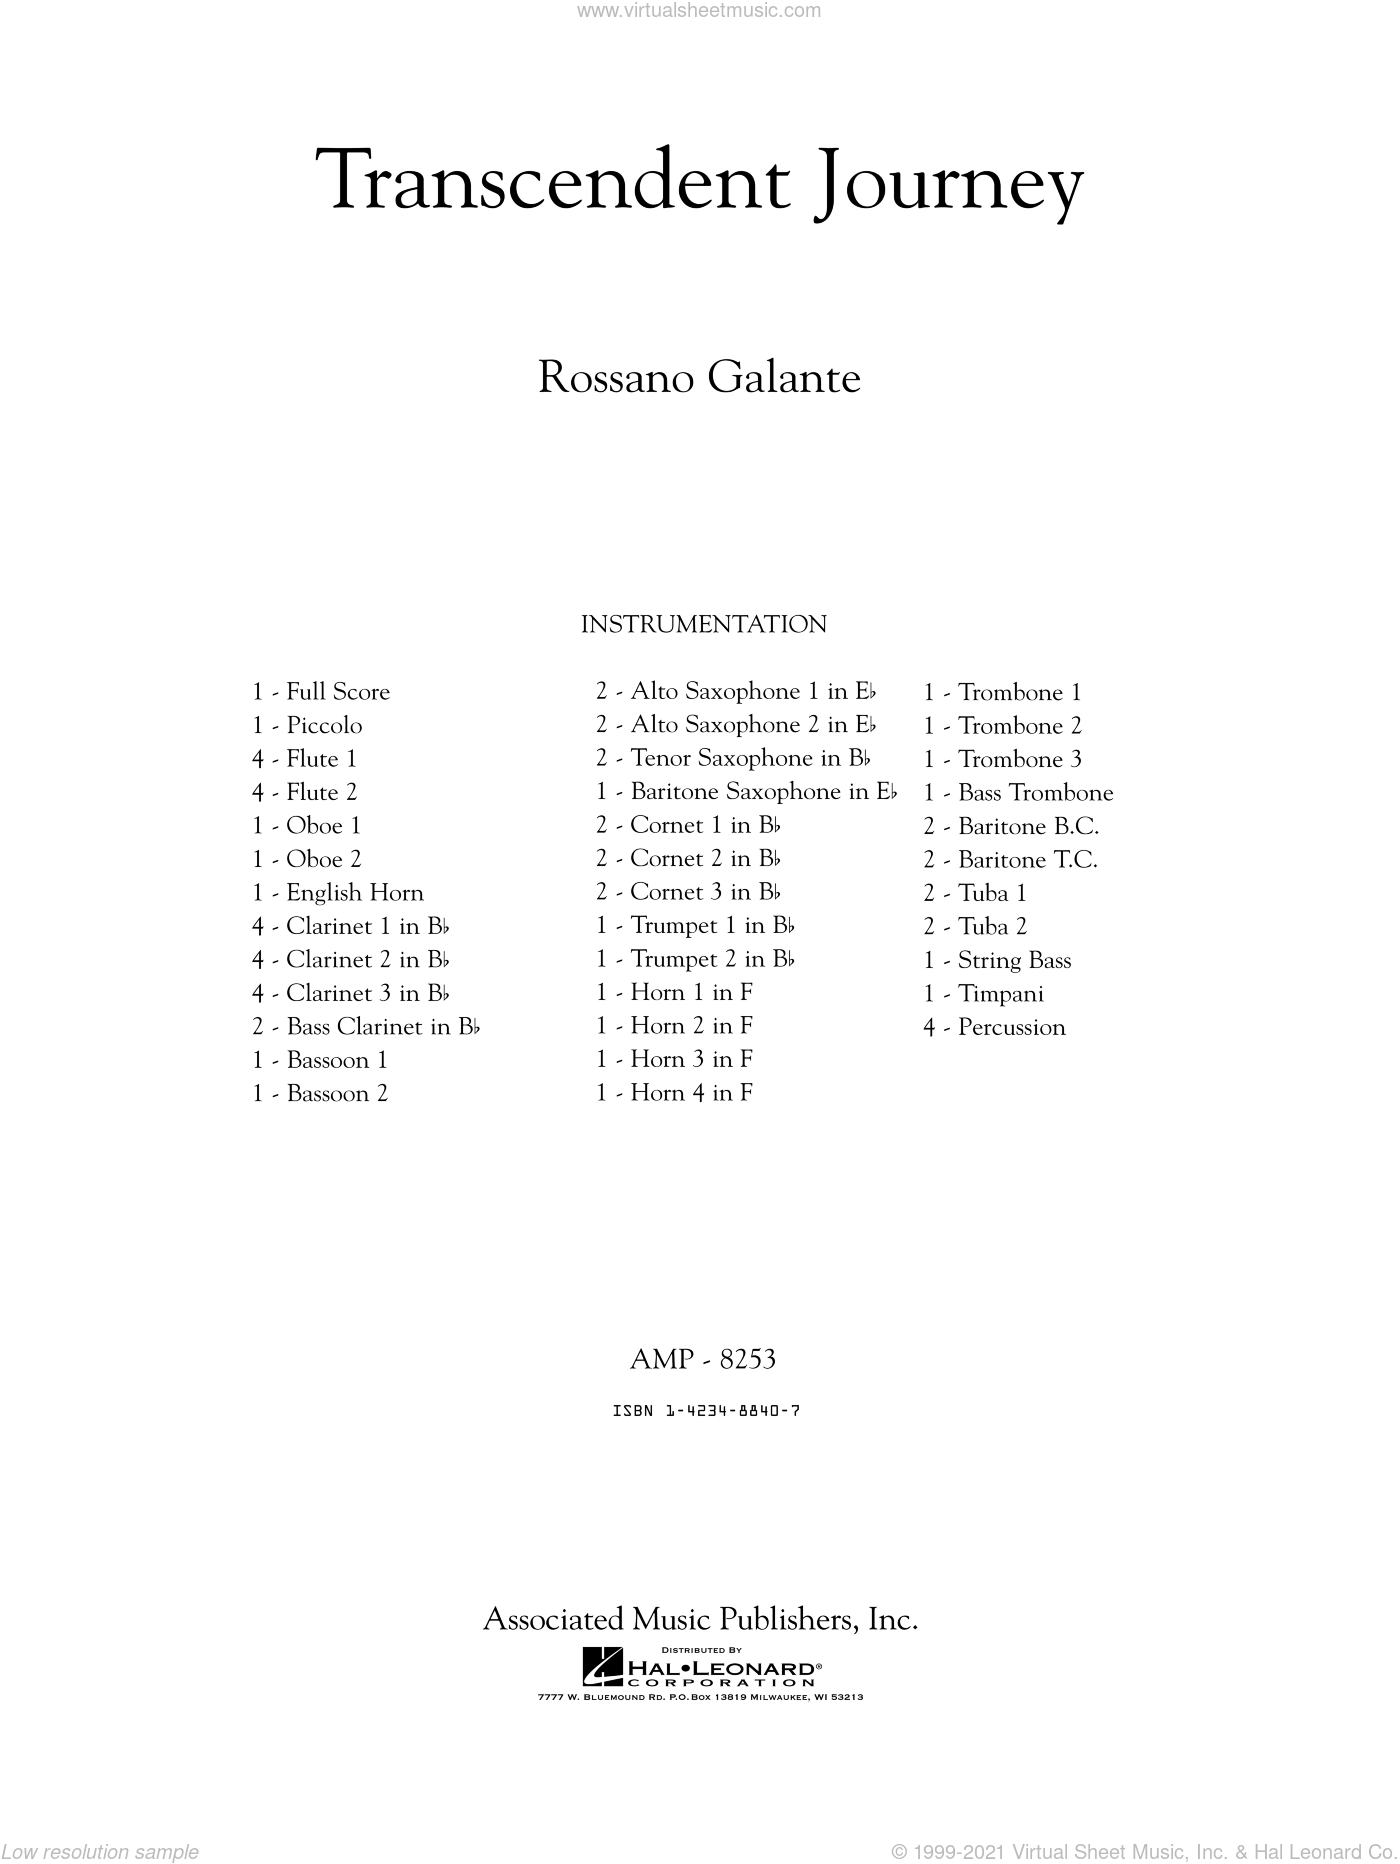 Transcendent Journey sheet music for concert band (full score) by Rossano Galante